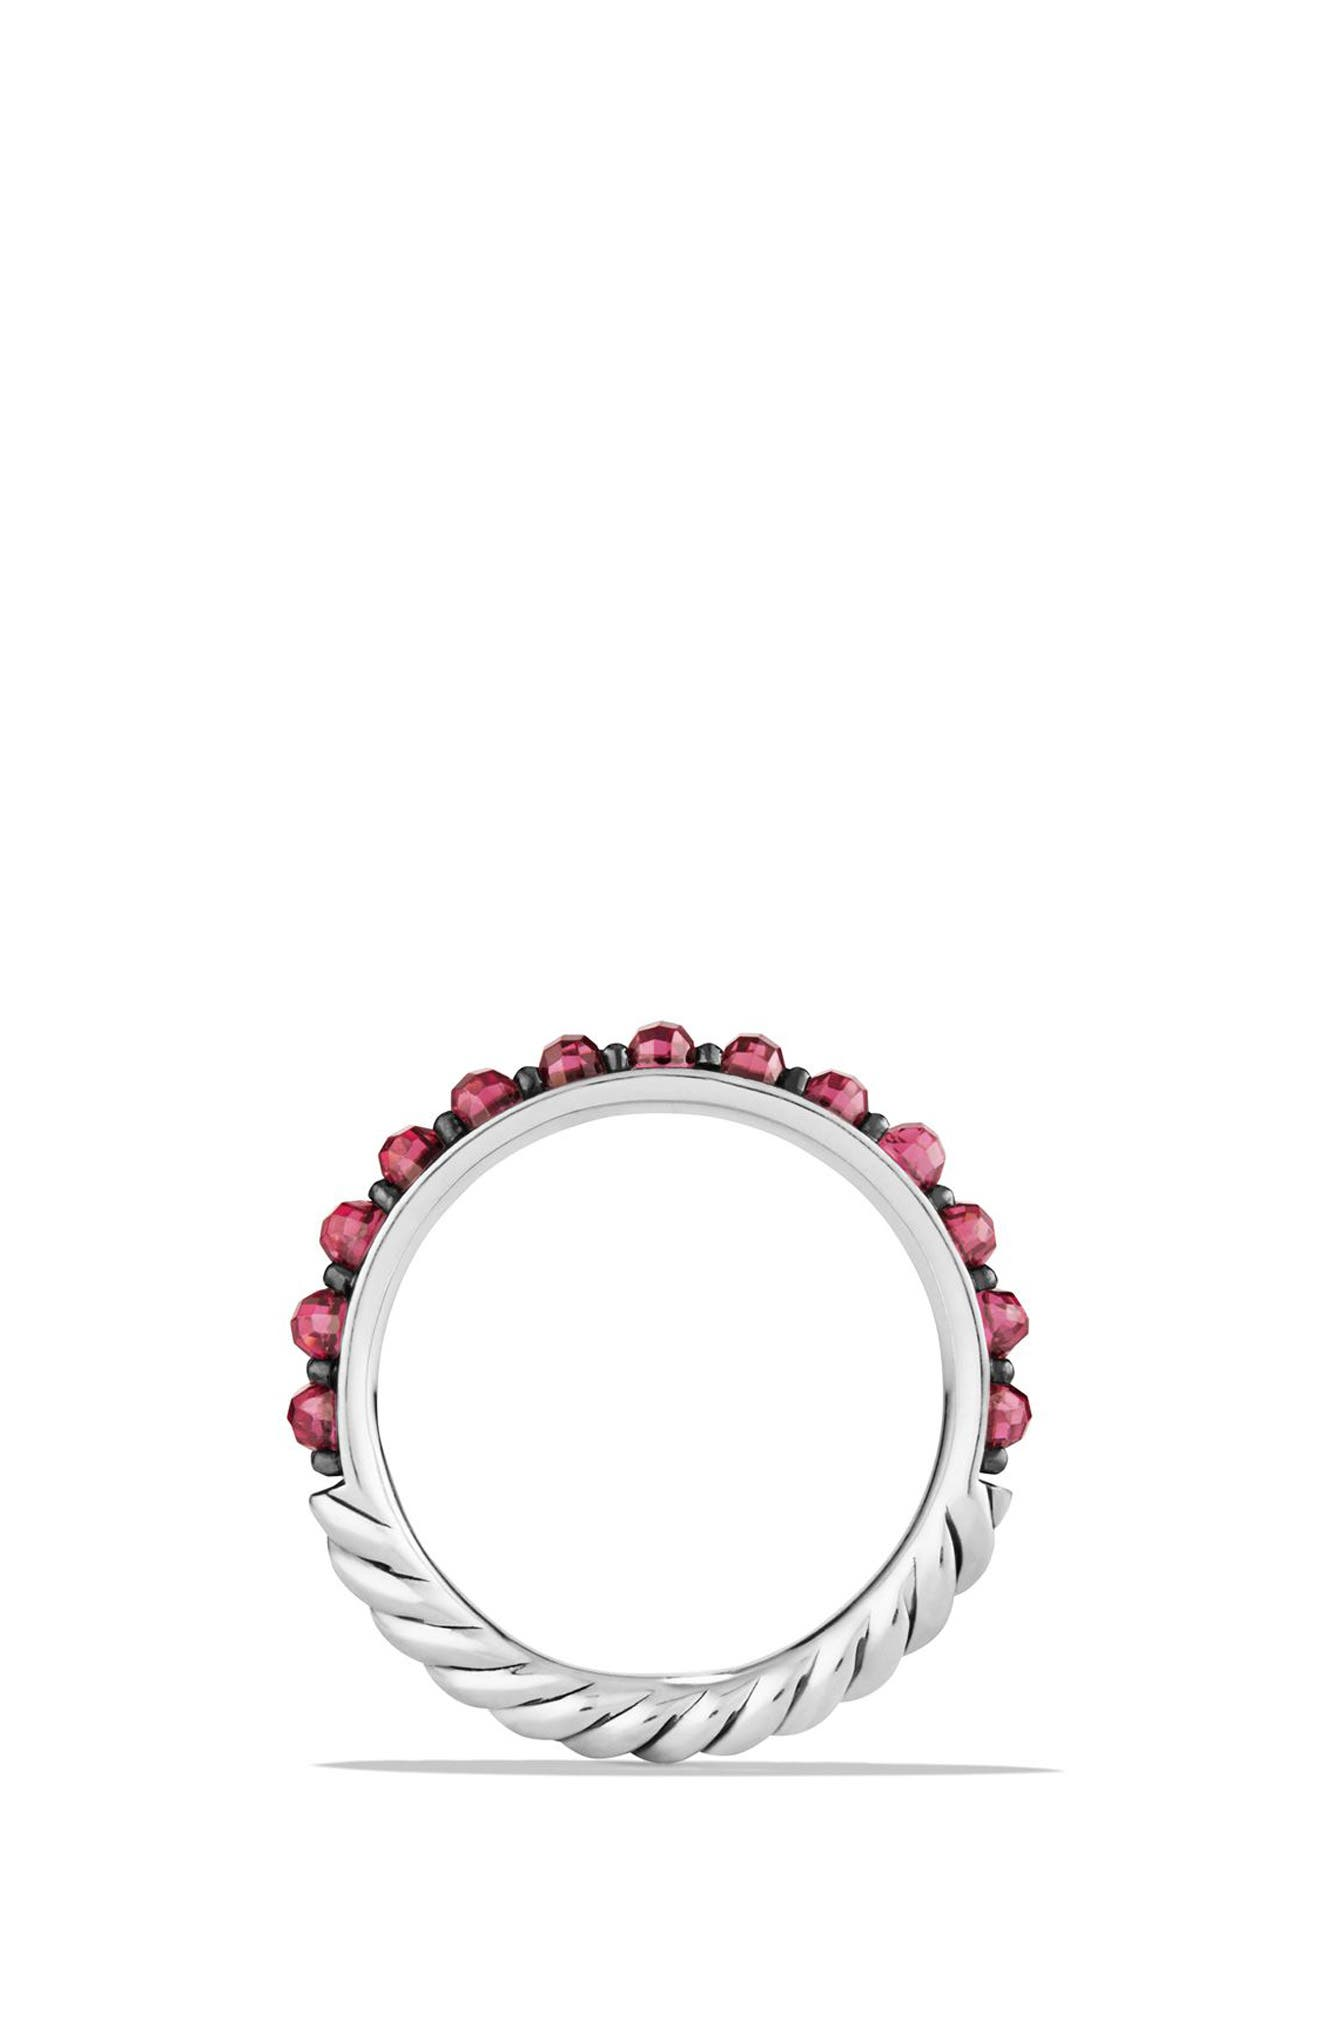 Cable Berries Band Ring,                             Alternate thumbnail 3, color,                             RHODALITE